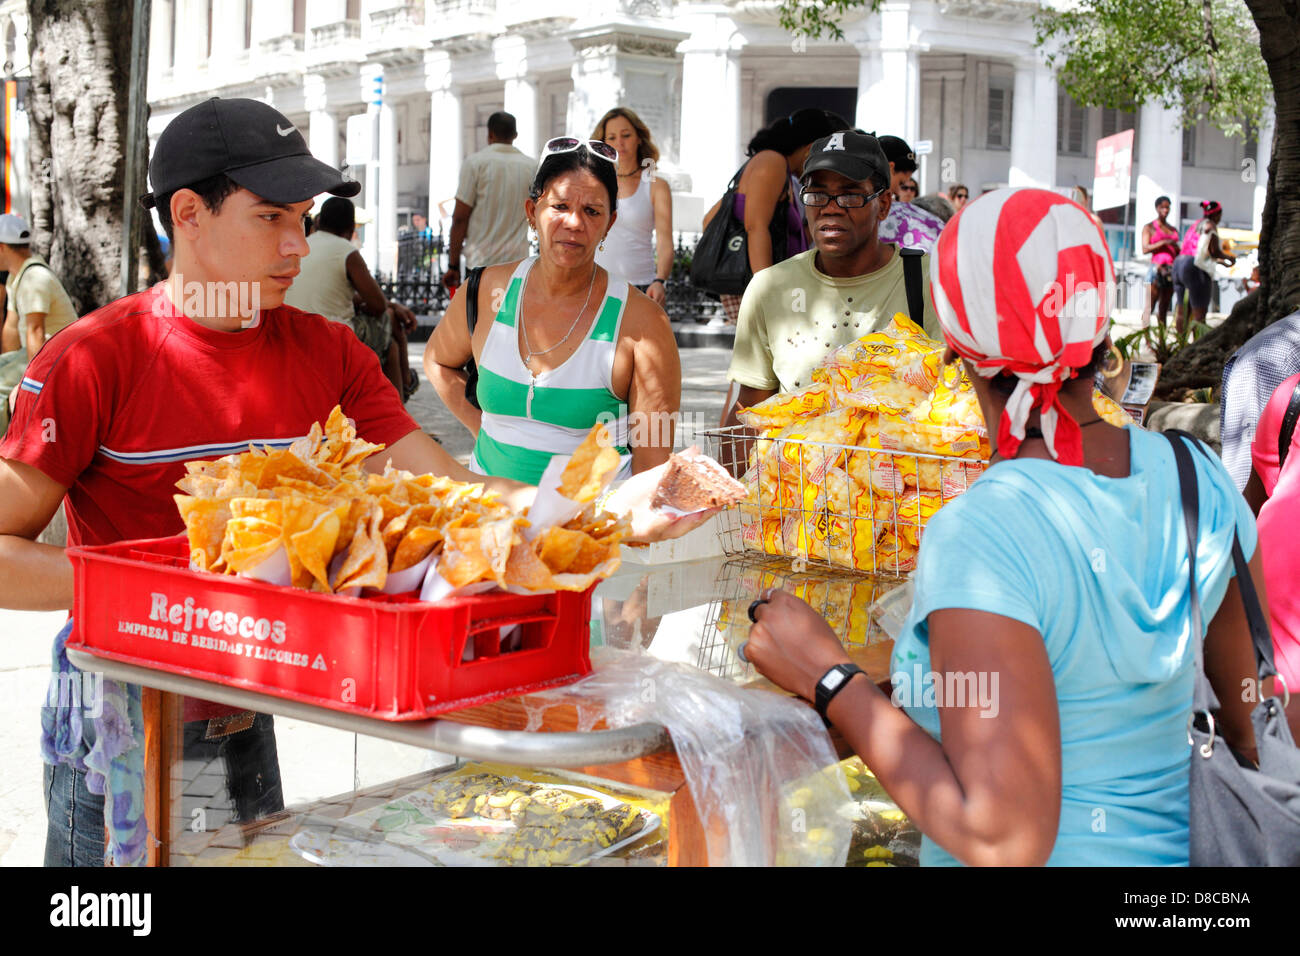 Food Stall Selling Cakes And Snacks On The Street In Havana Cuba